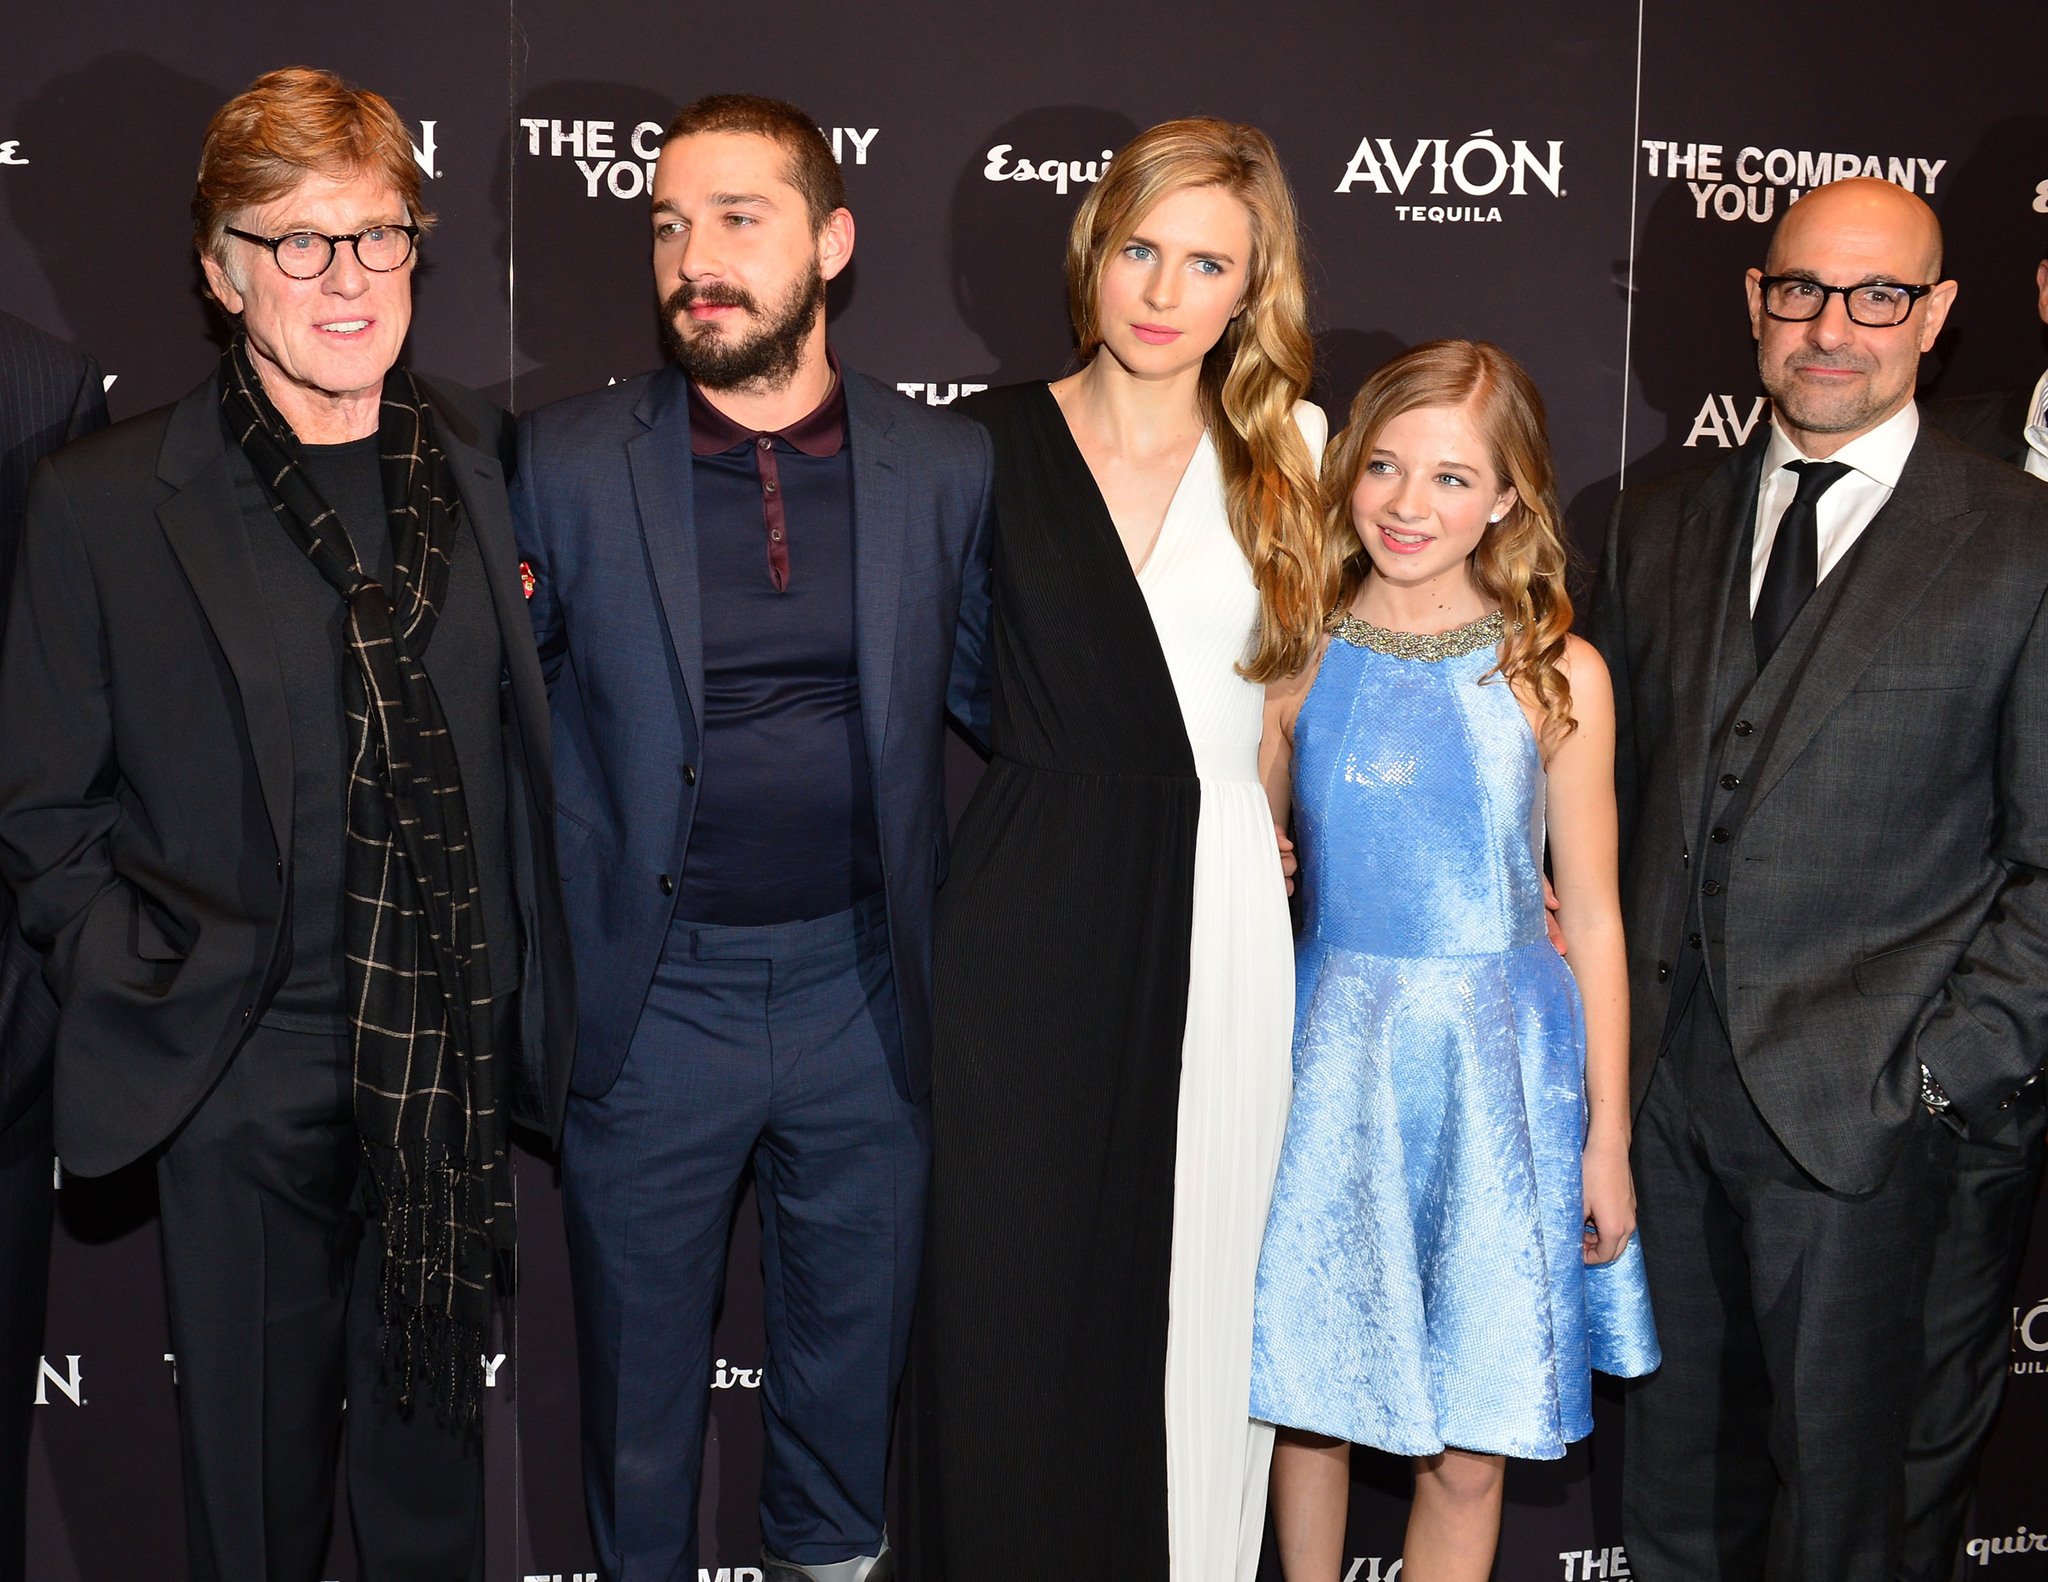 Robert Redford, Stanley Tucci, Shia LaBeouf, Brit Marling and Jackie Evancho at event of The Company You Keep (2012)